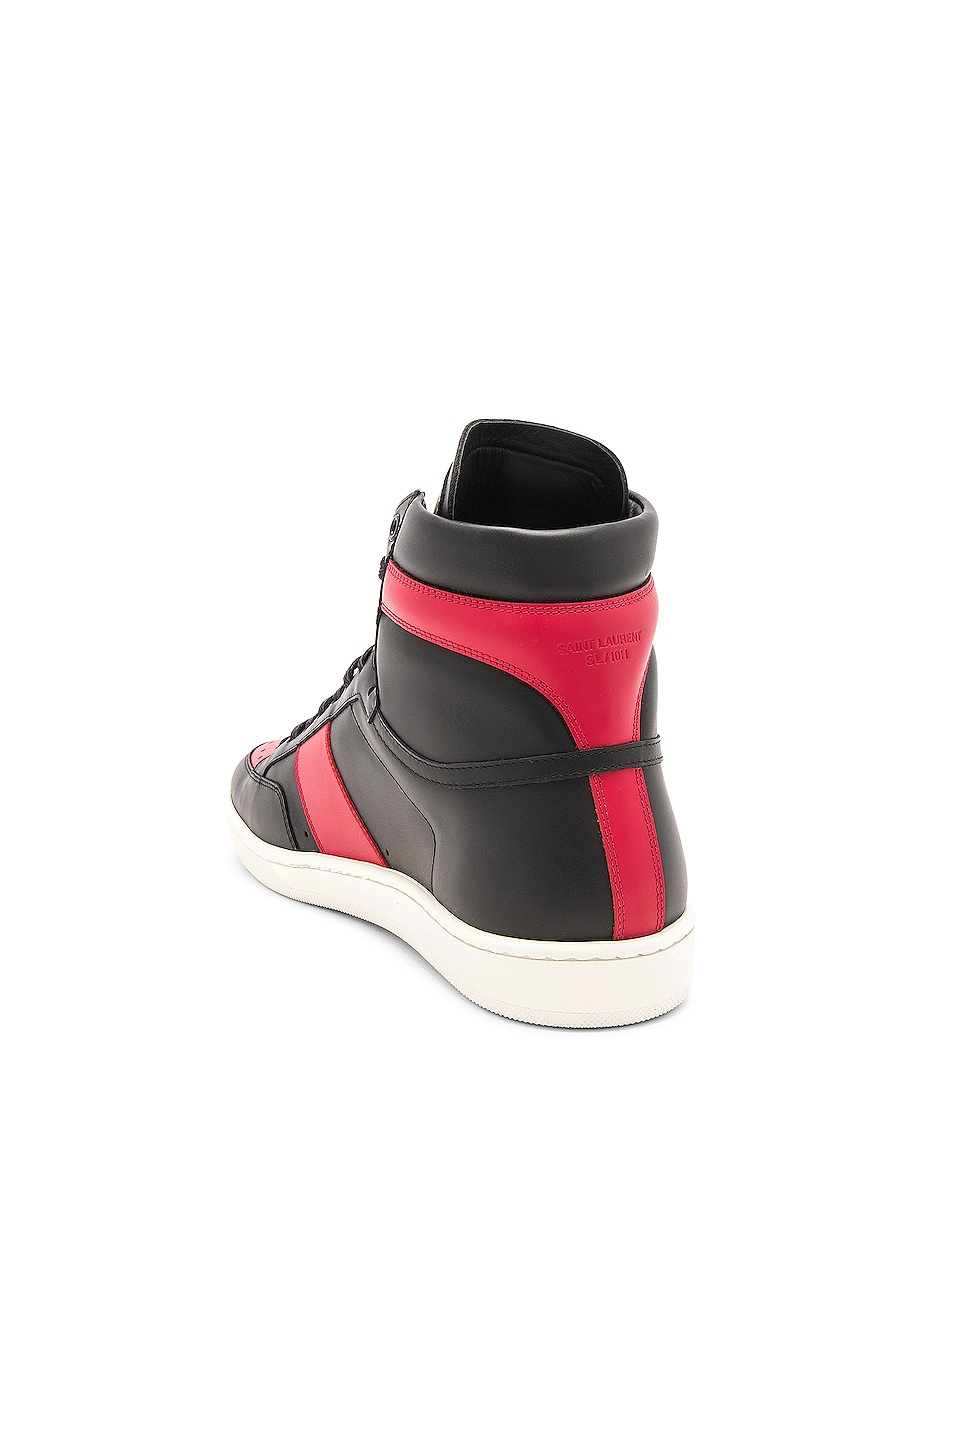 Image 3 of Saint Laurent Signature Court Classic SL/10H Leather High Top Sneakers in Black & Red